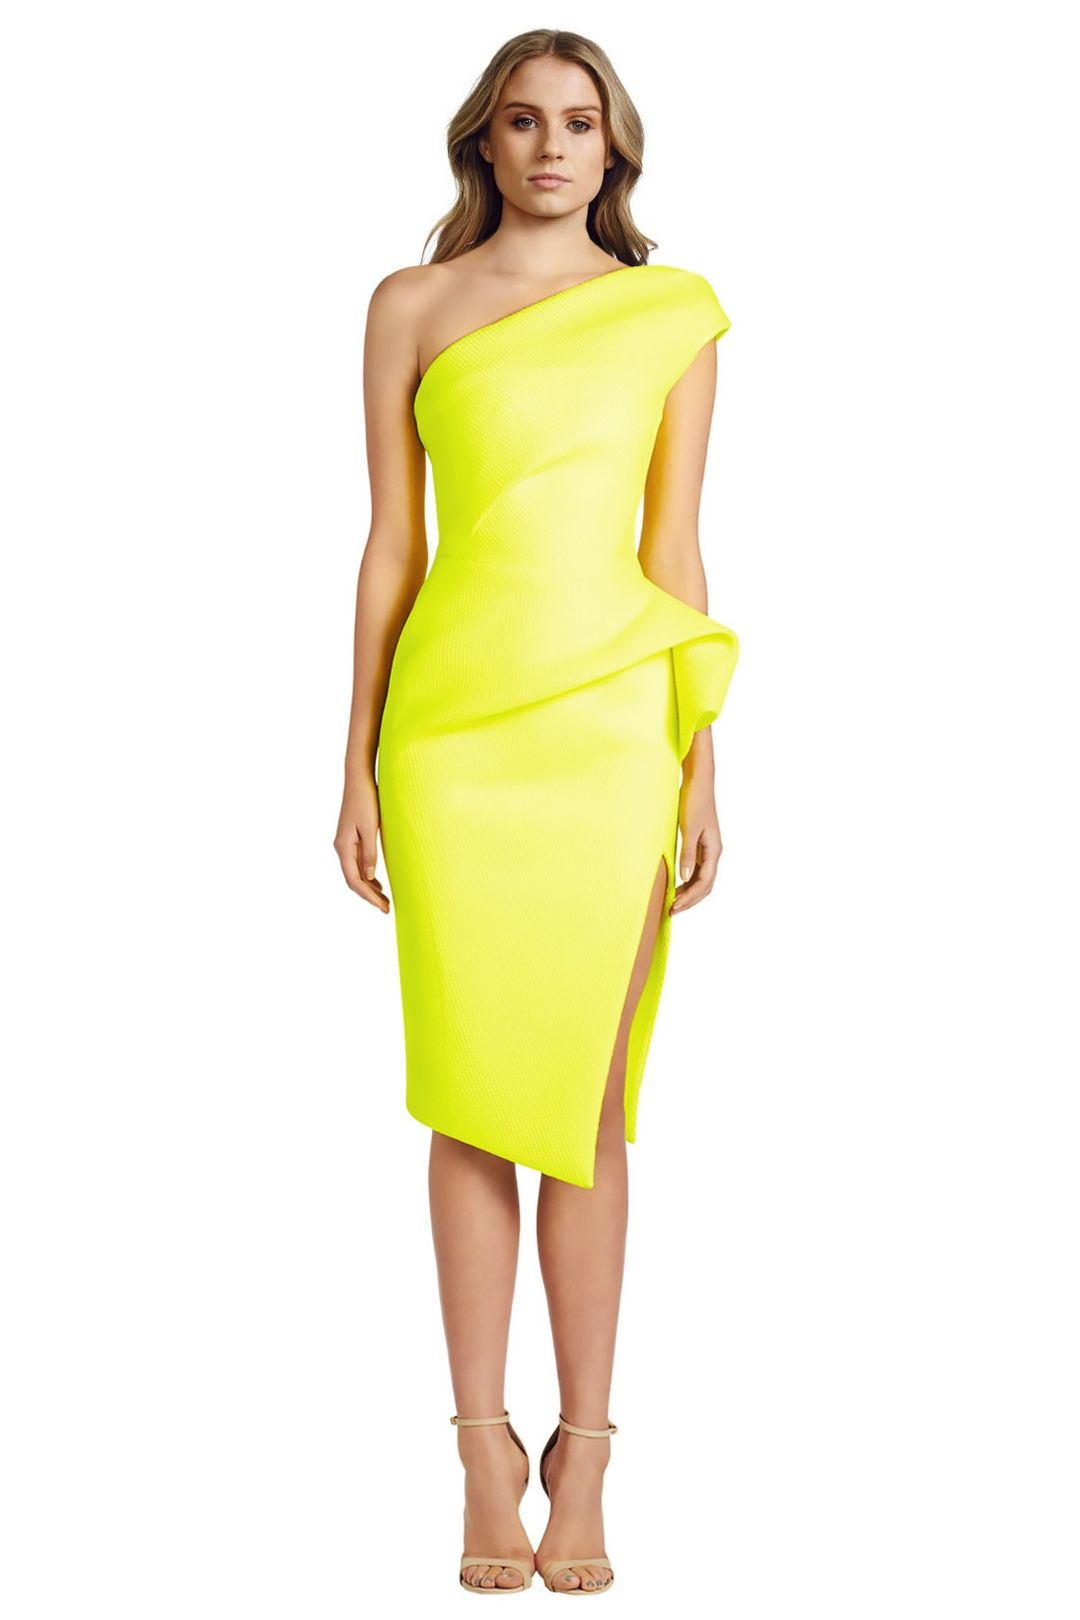 Maticevski - Division Dress - Yellow - Front